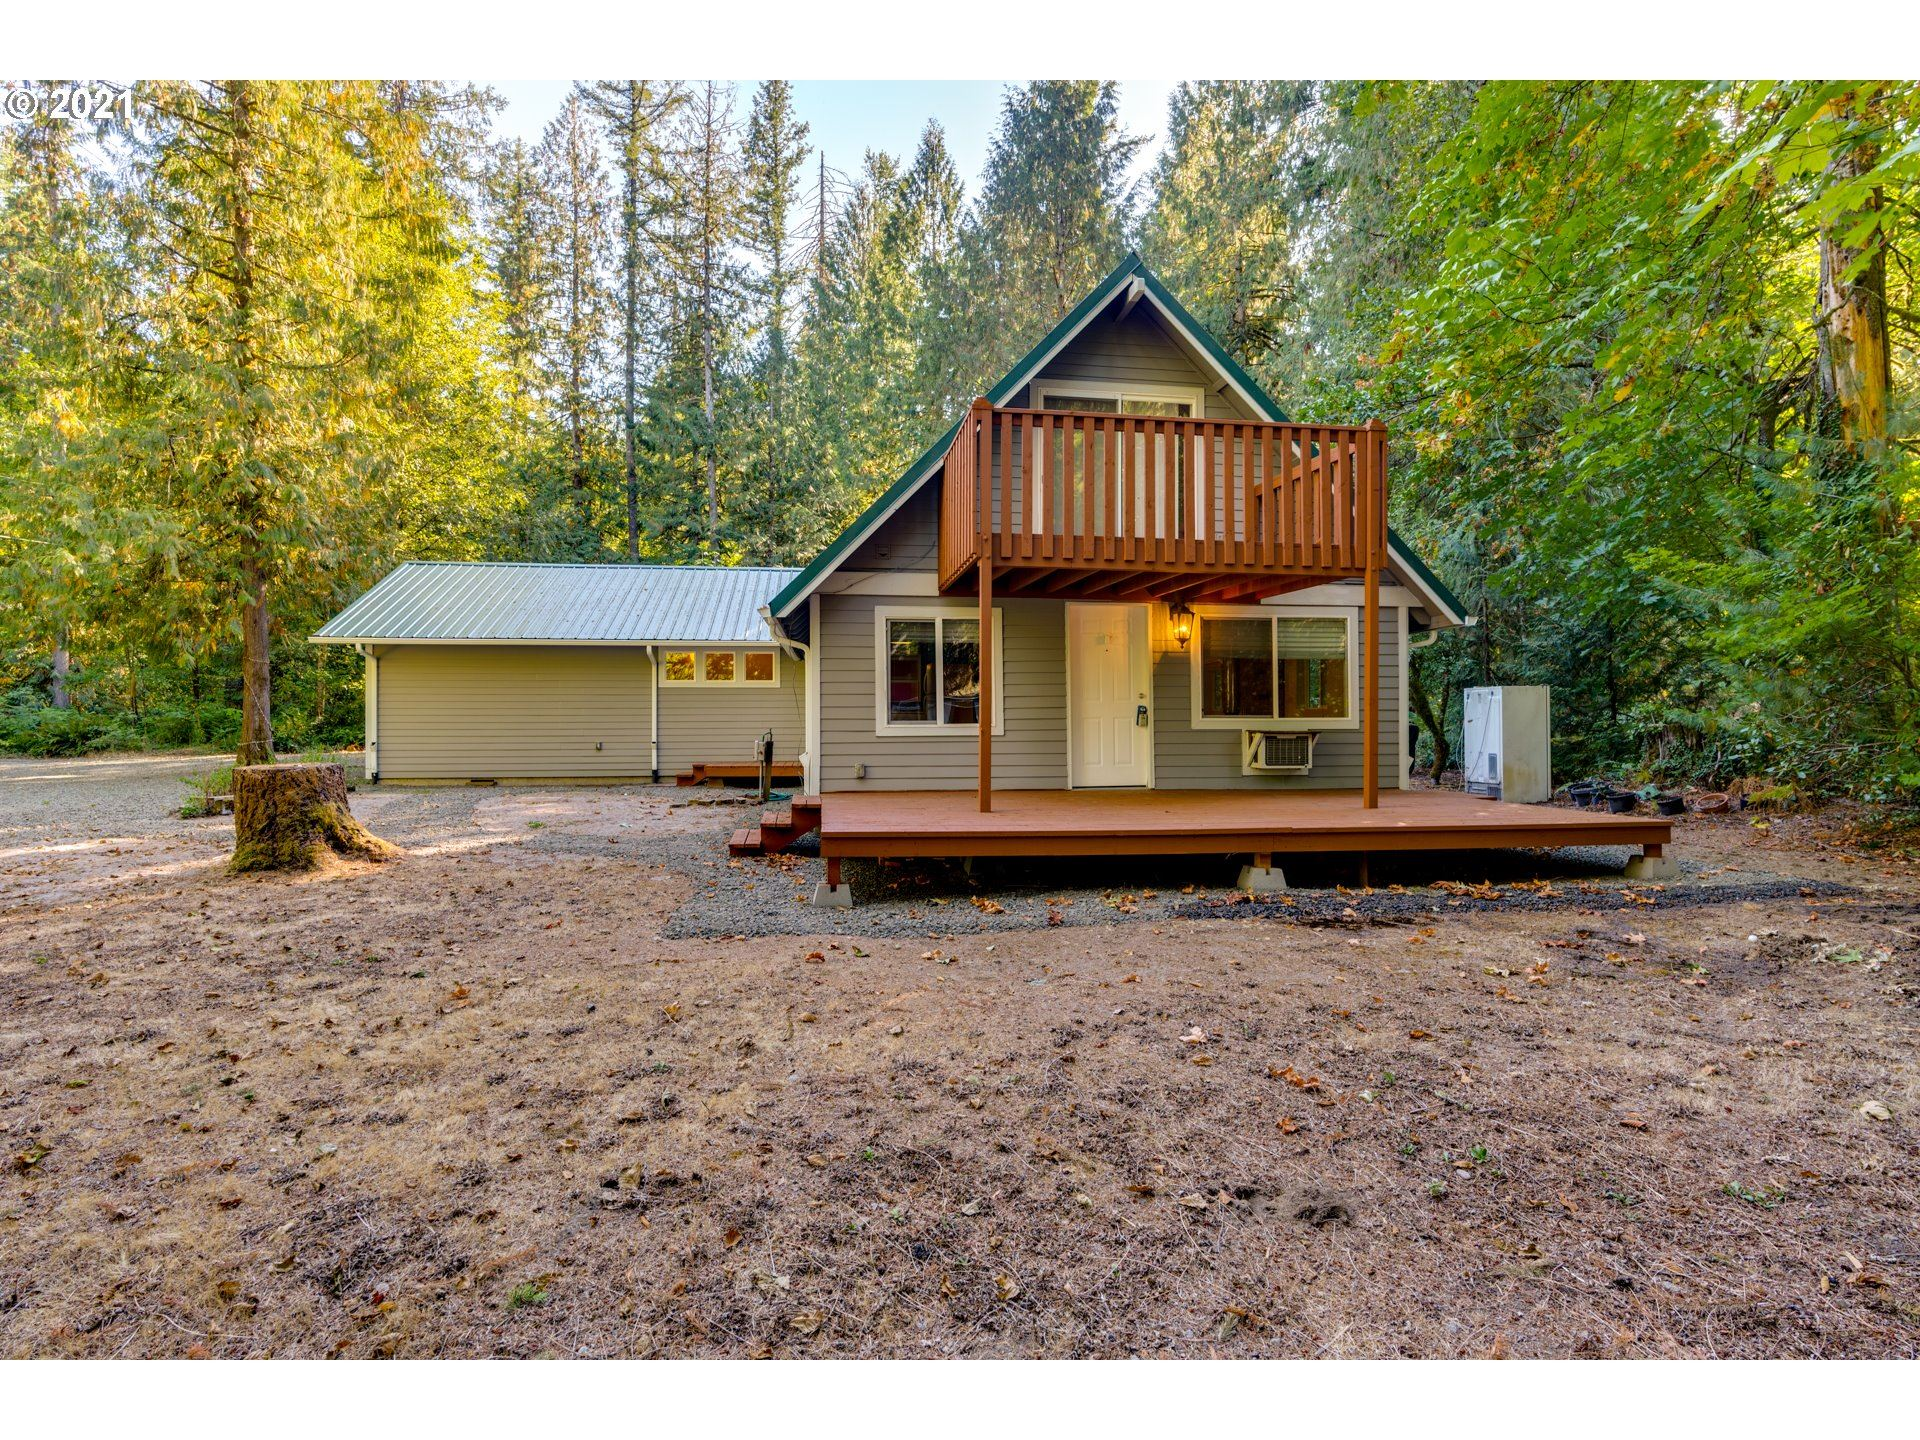 65360 E HIGHWAY 26, Welches, OR 97067 - MLS#: 21264587